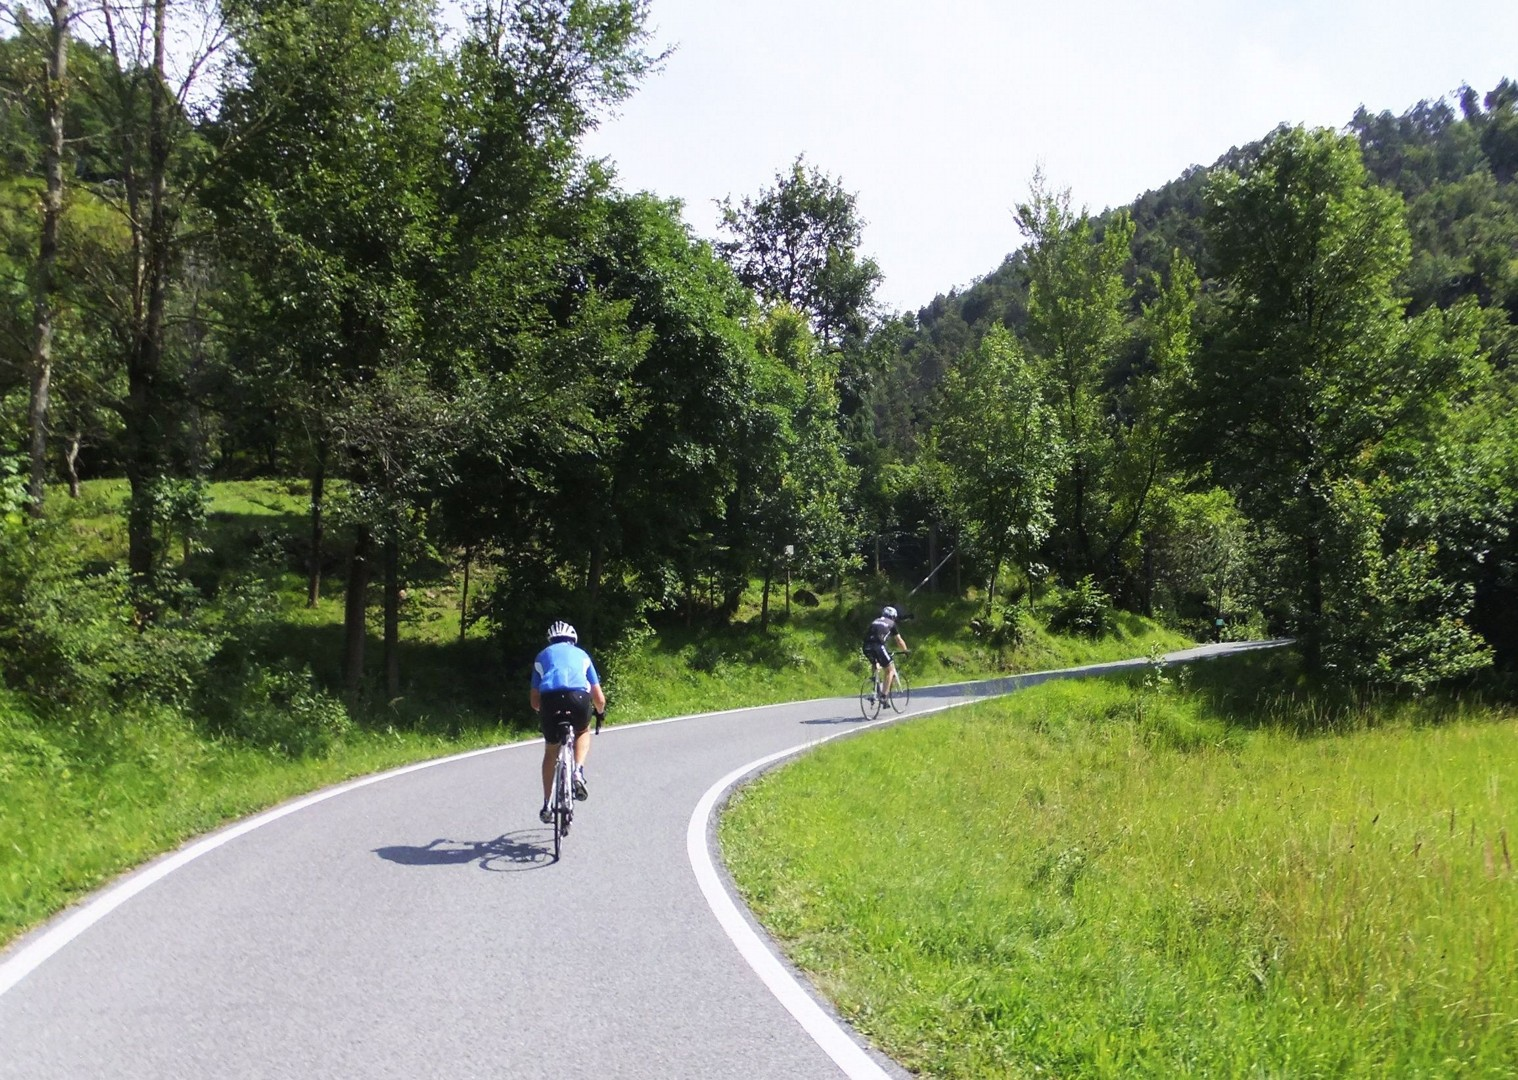 vineyards-italy-piemonte-la-strada-del-vino-guided-road-cycling-holiday.jpg - NEW! Italy - Piemonte - La Strada del Vino - Road Cycling